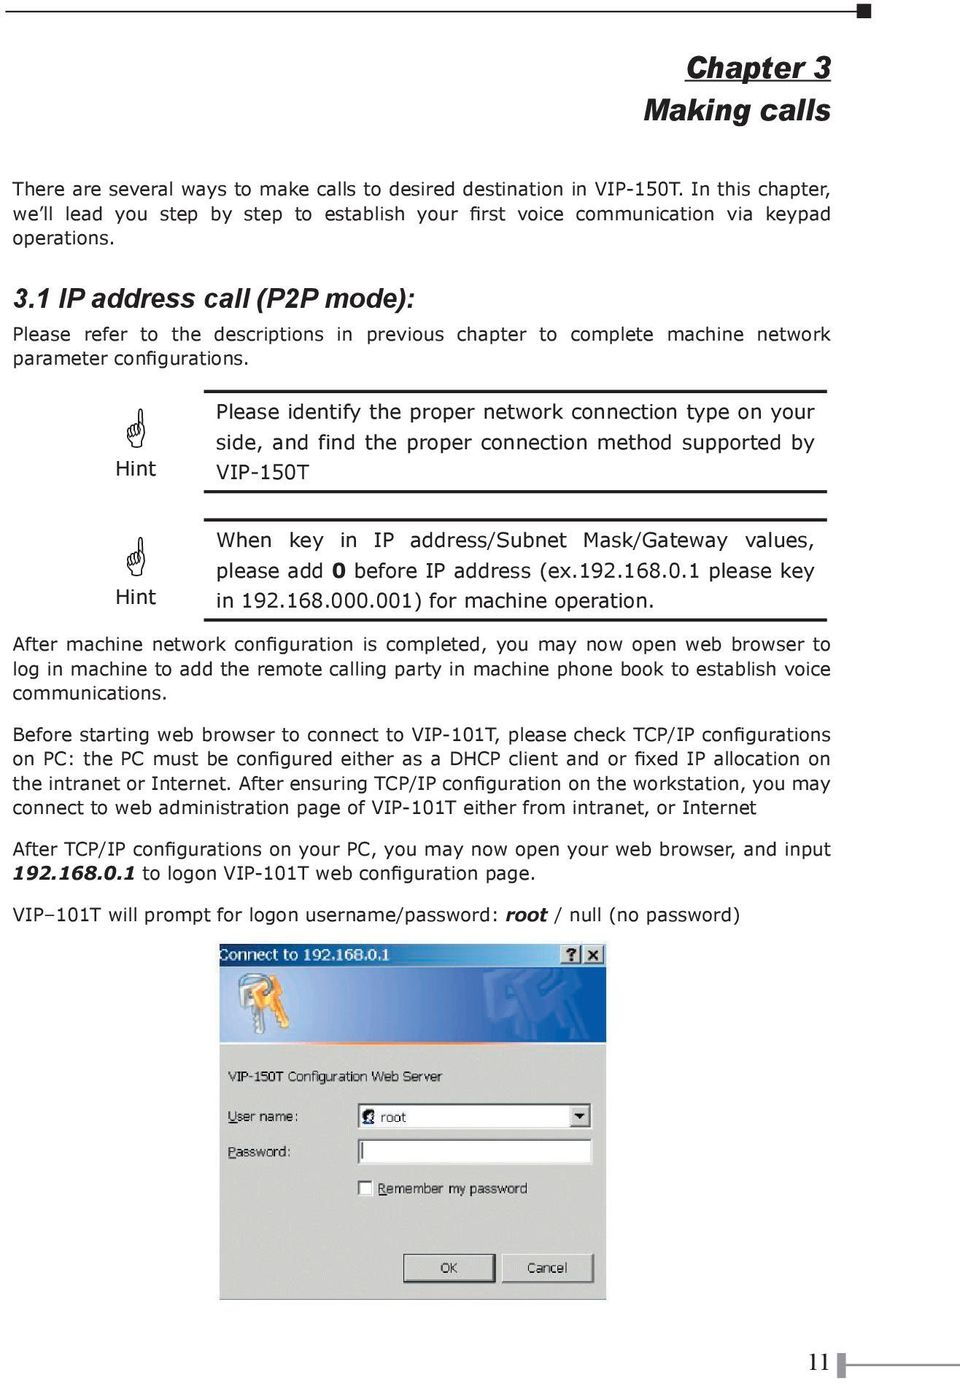 1 IP address call (P2P mode): Please refer to the descriptions in previous chapter to complete machine network parameter configurations.